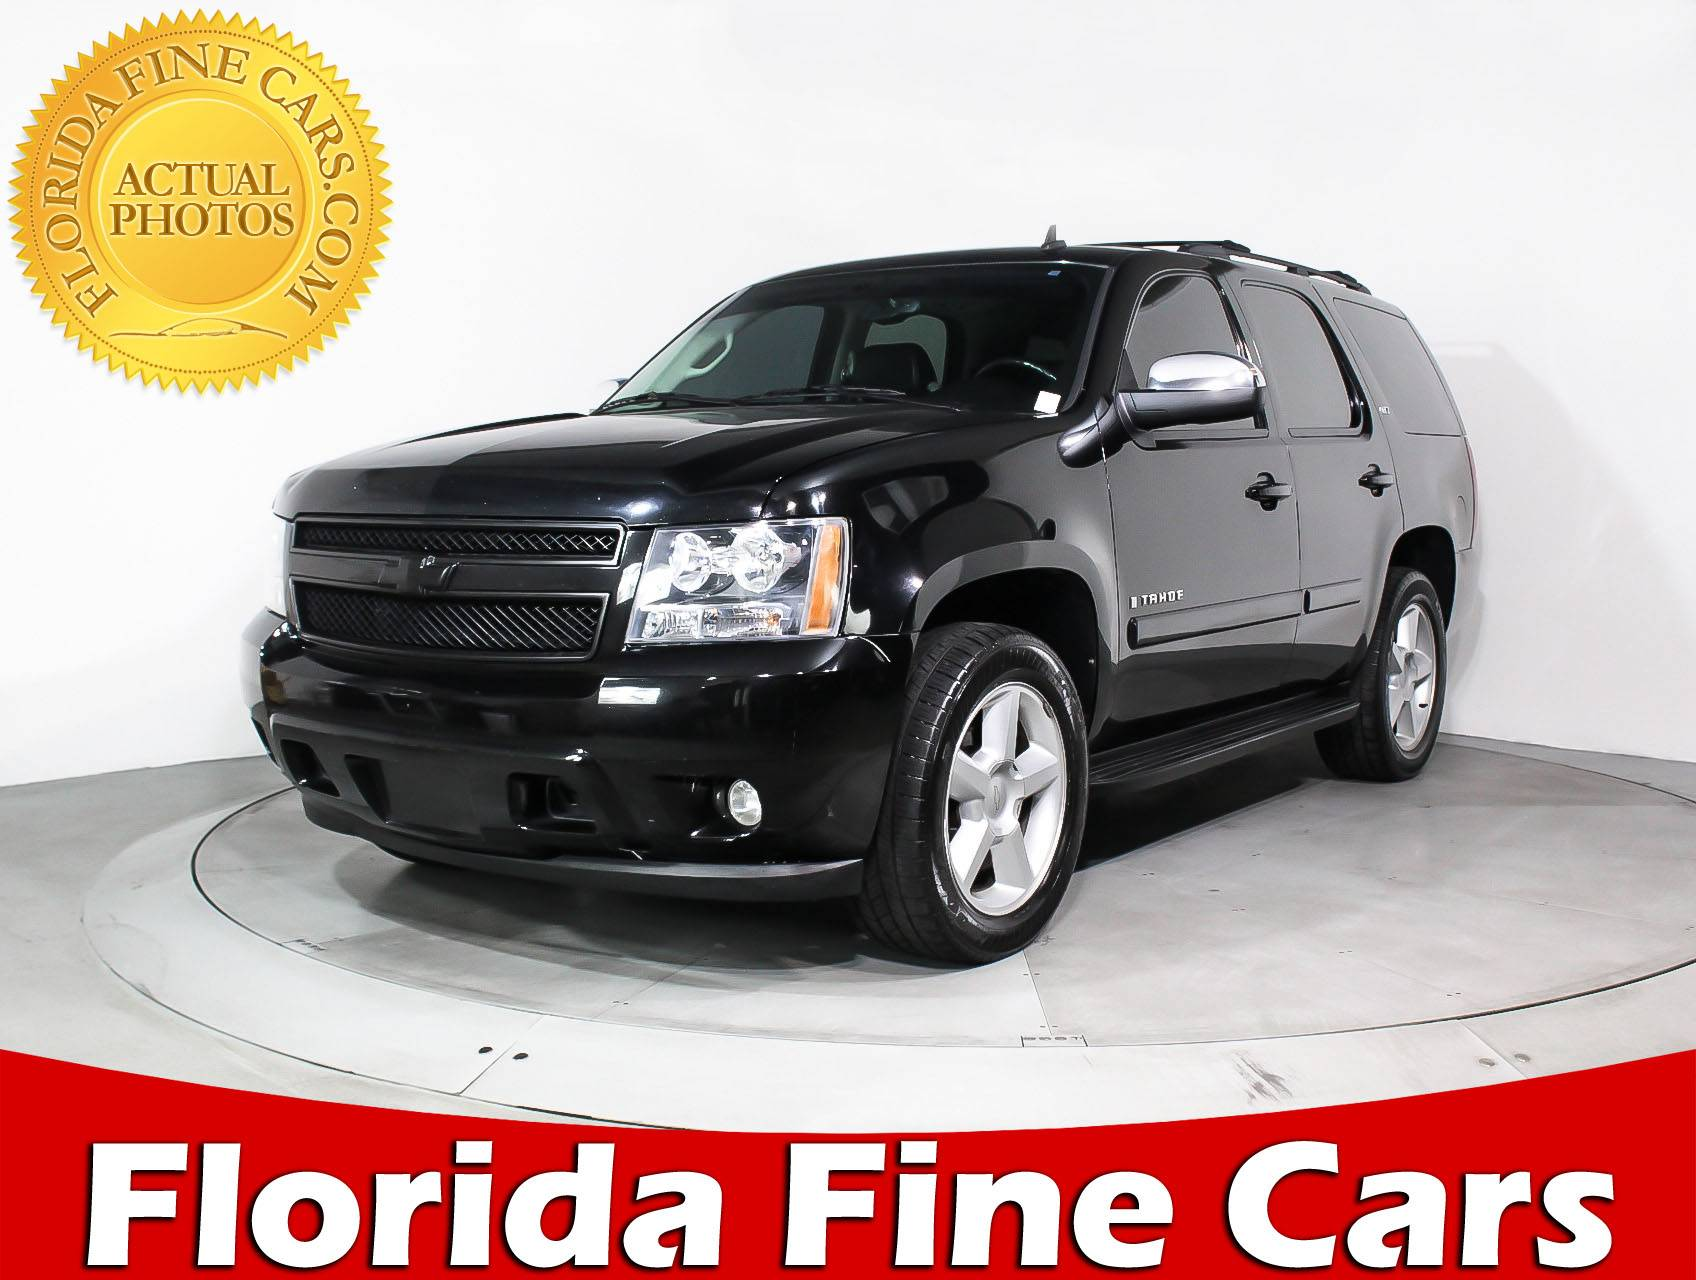 Used 2008 CHEVROLET TAHOE Ltz SUV for sale in HOLLYWOOD FL